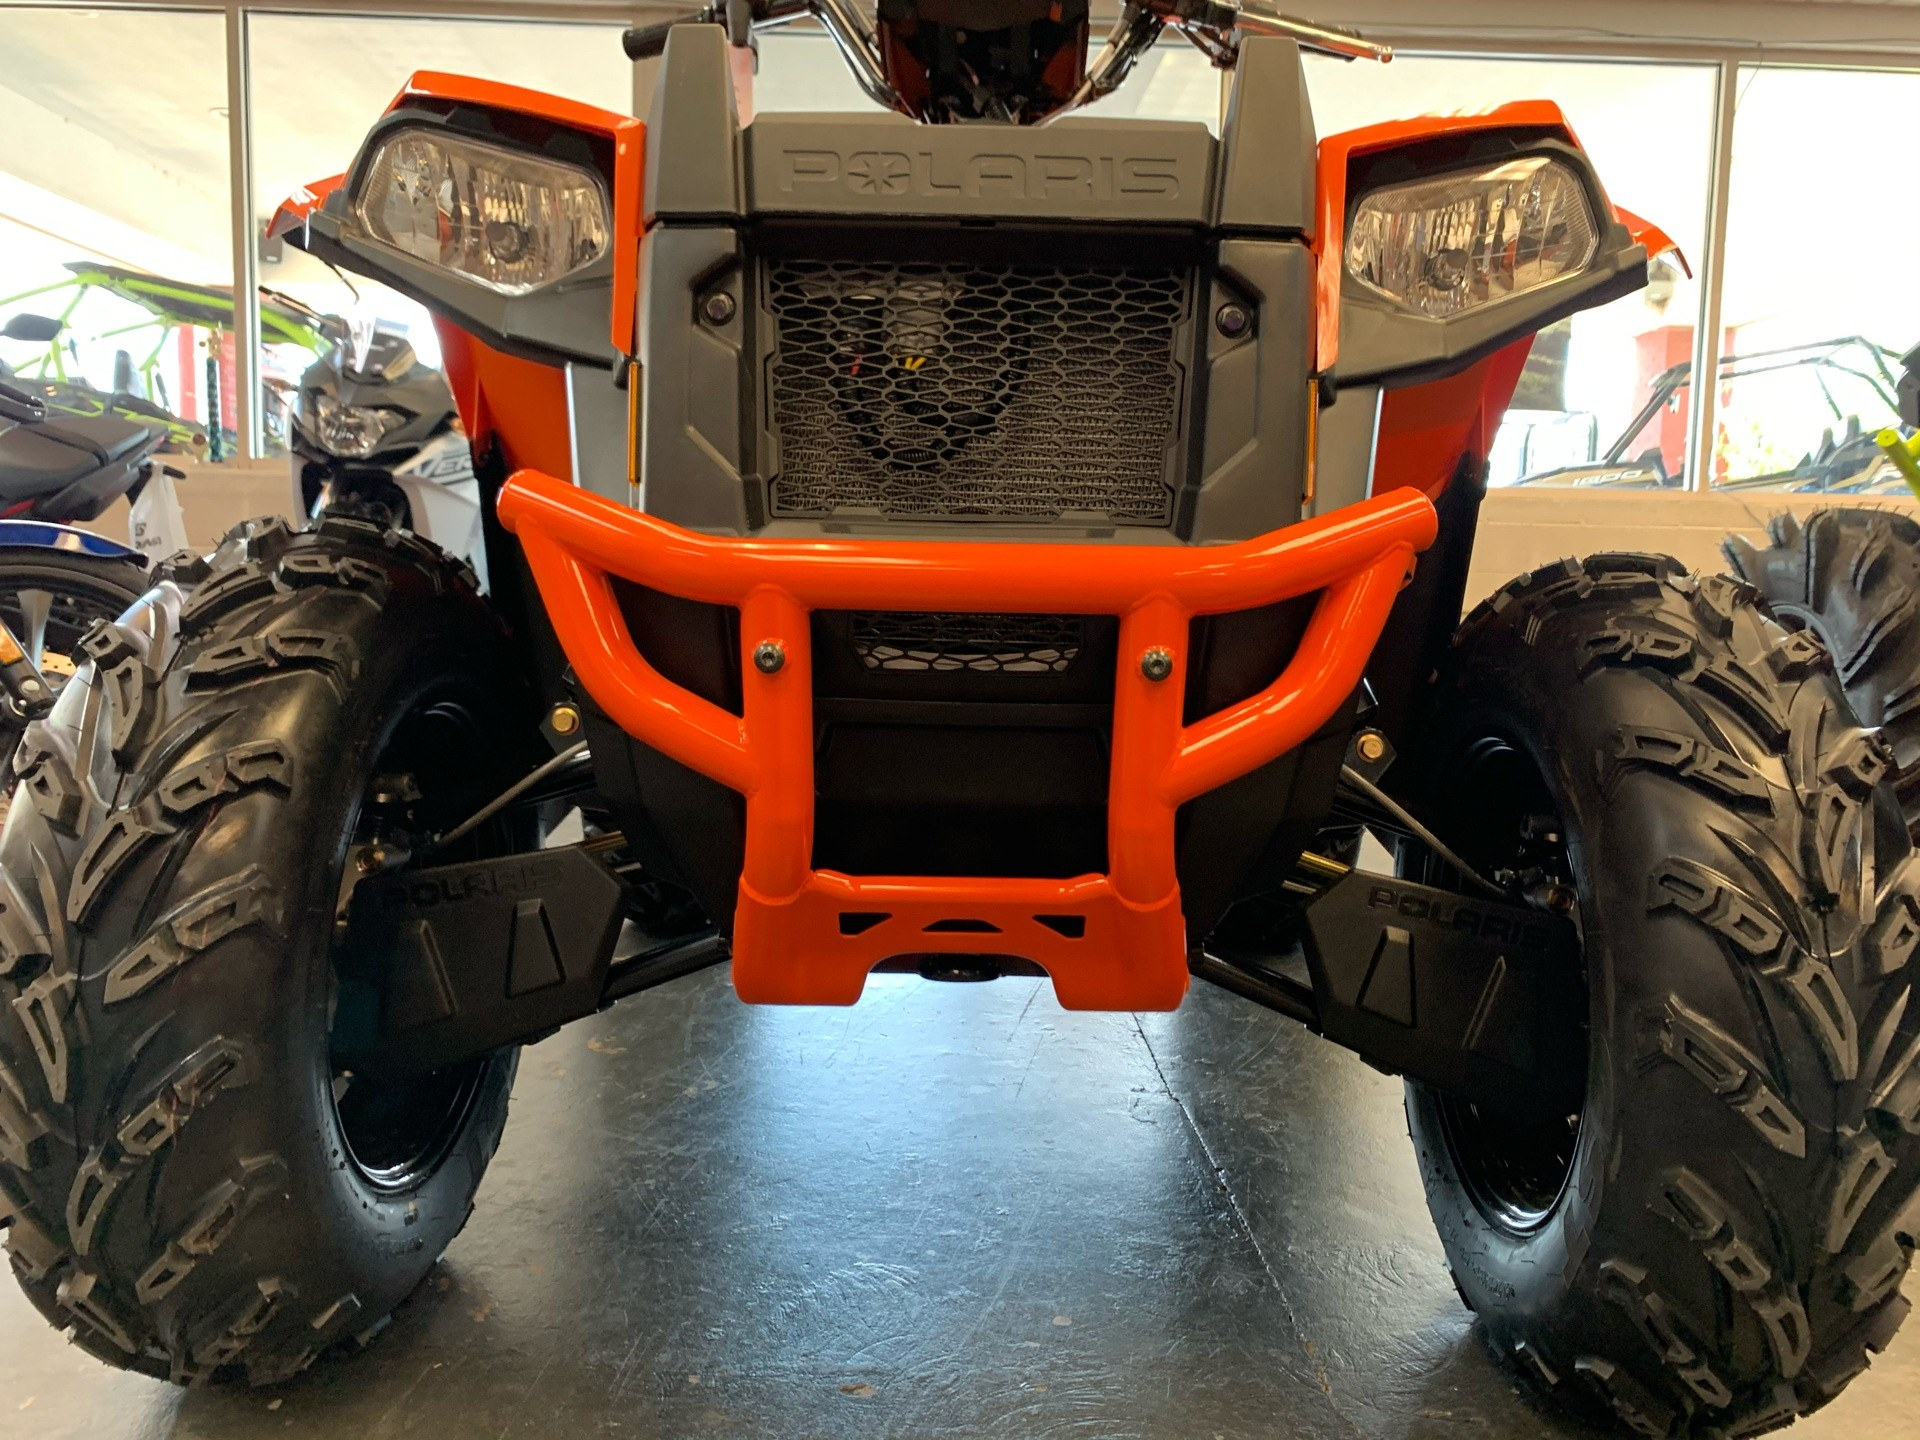 2020 Polaris Scrambler 850 in Petersburg, West Virginia - Photo 3